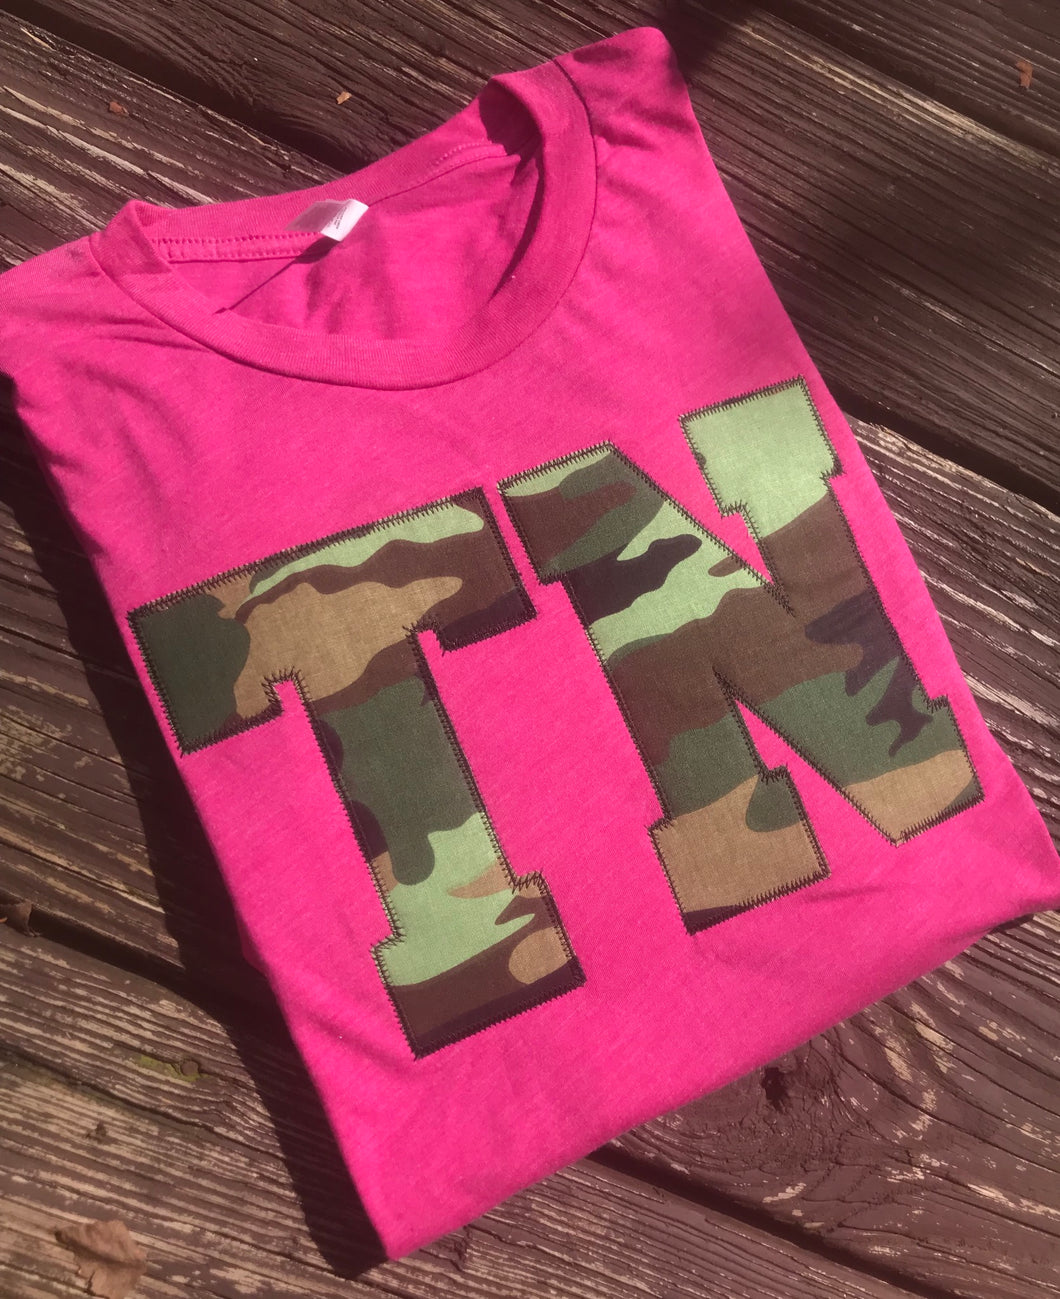 Tennessee Camo Berry Triblend Soft T - The Monogram Shoppe KY